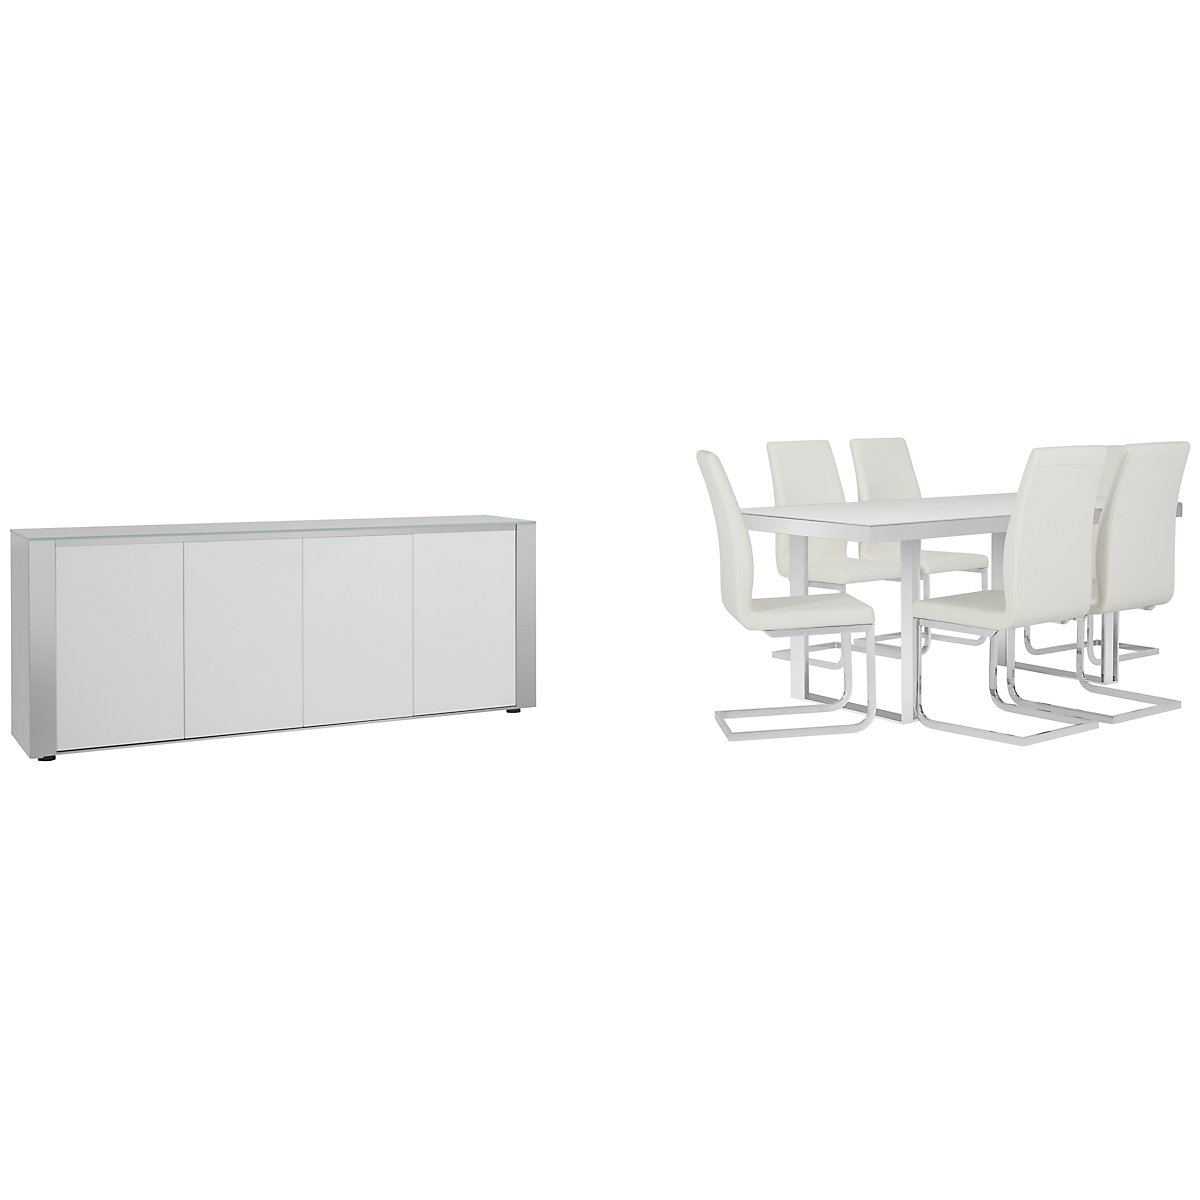 Harley White Wood Rect Dining Room